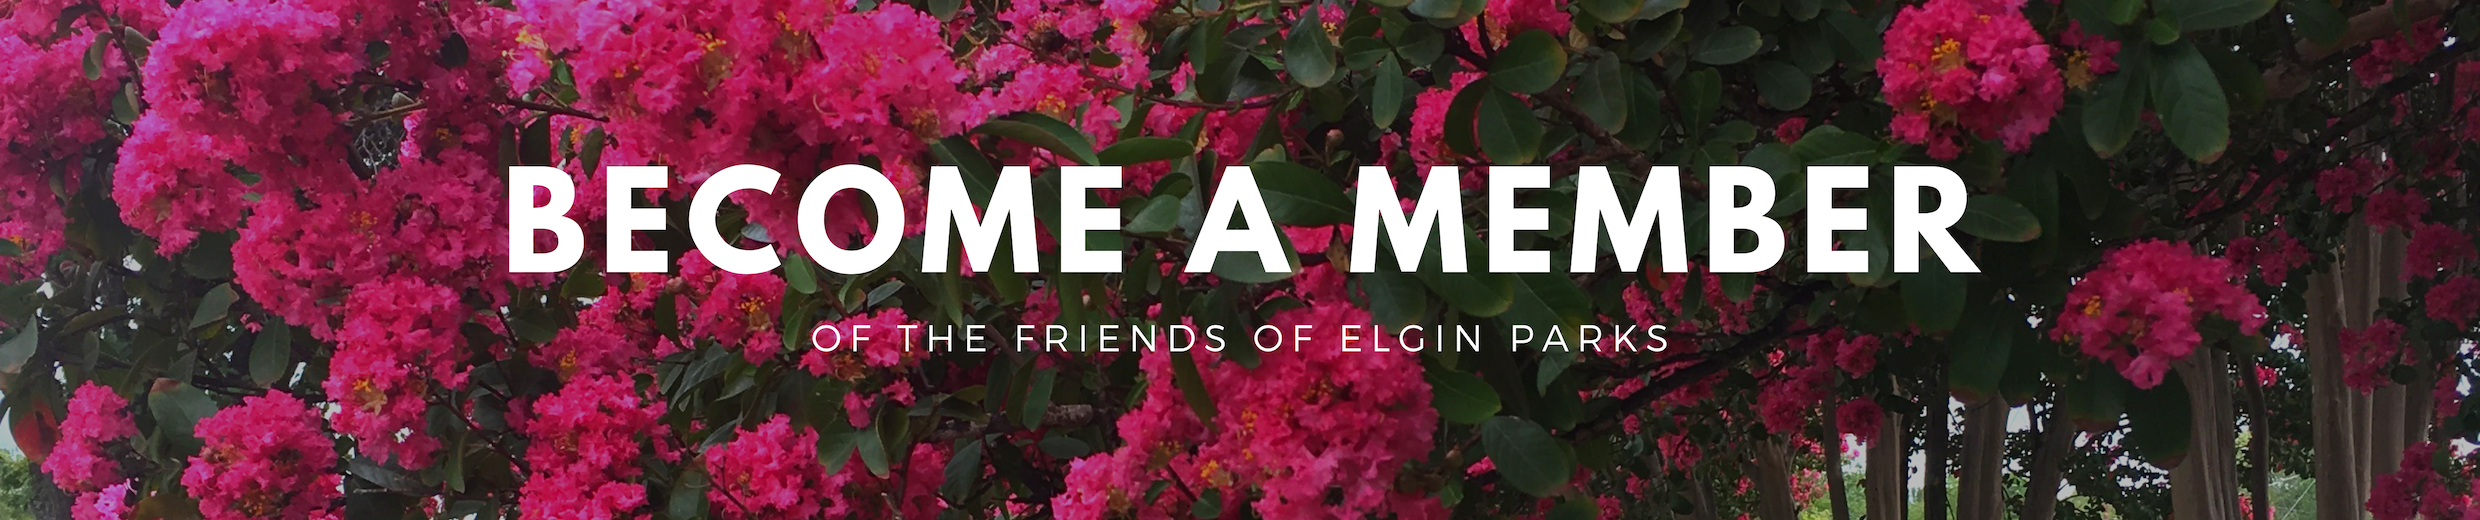 friends of elgin parks